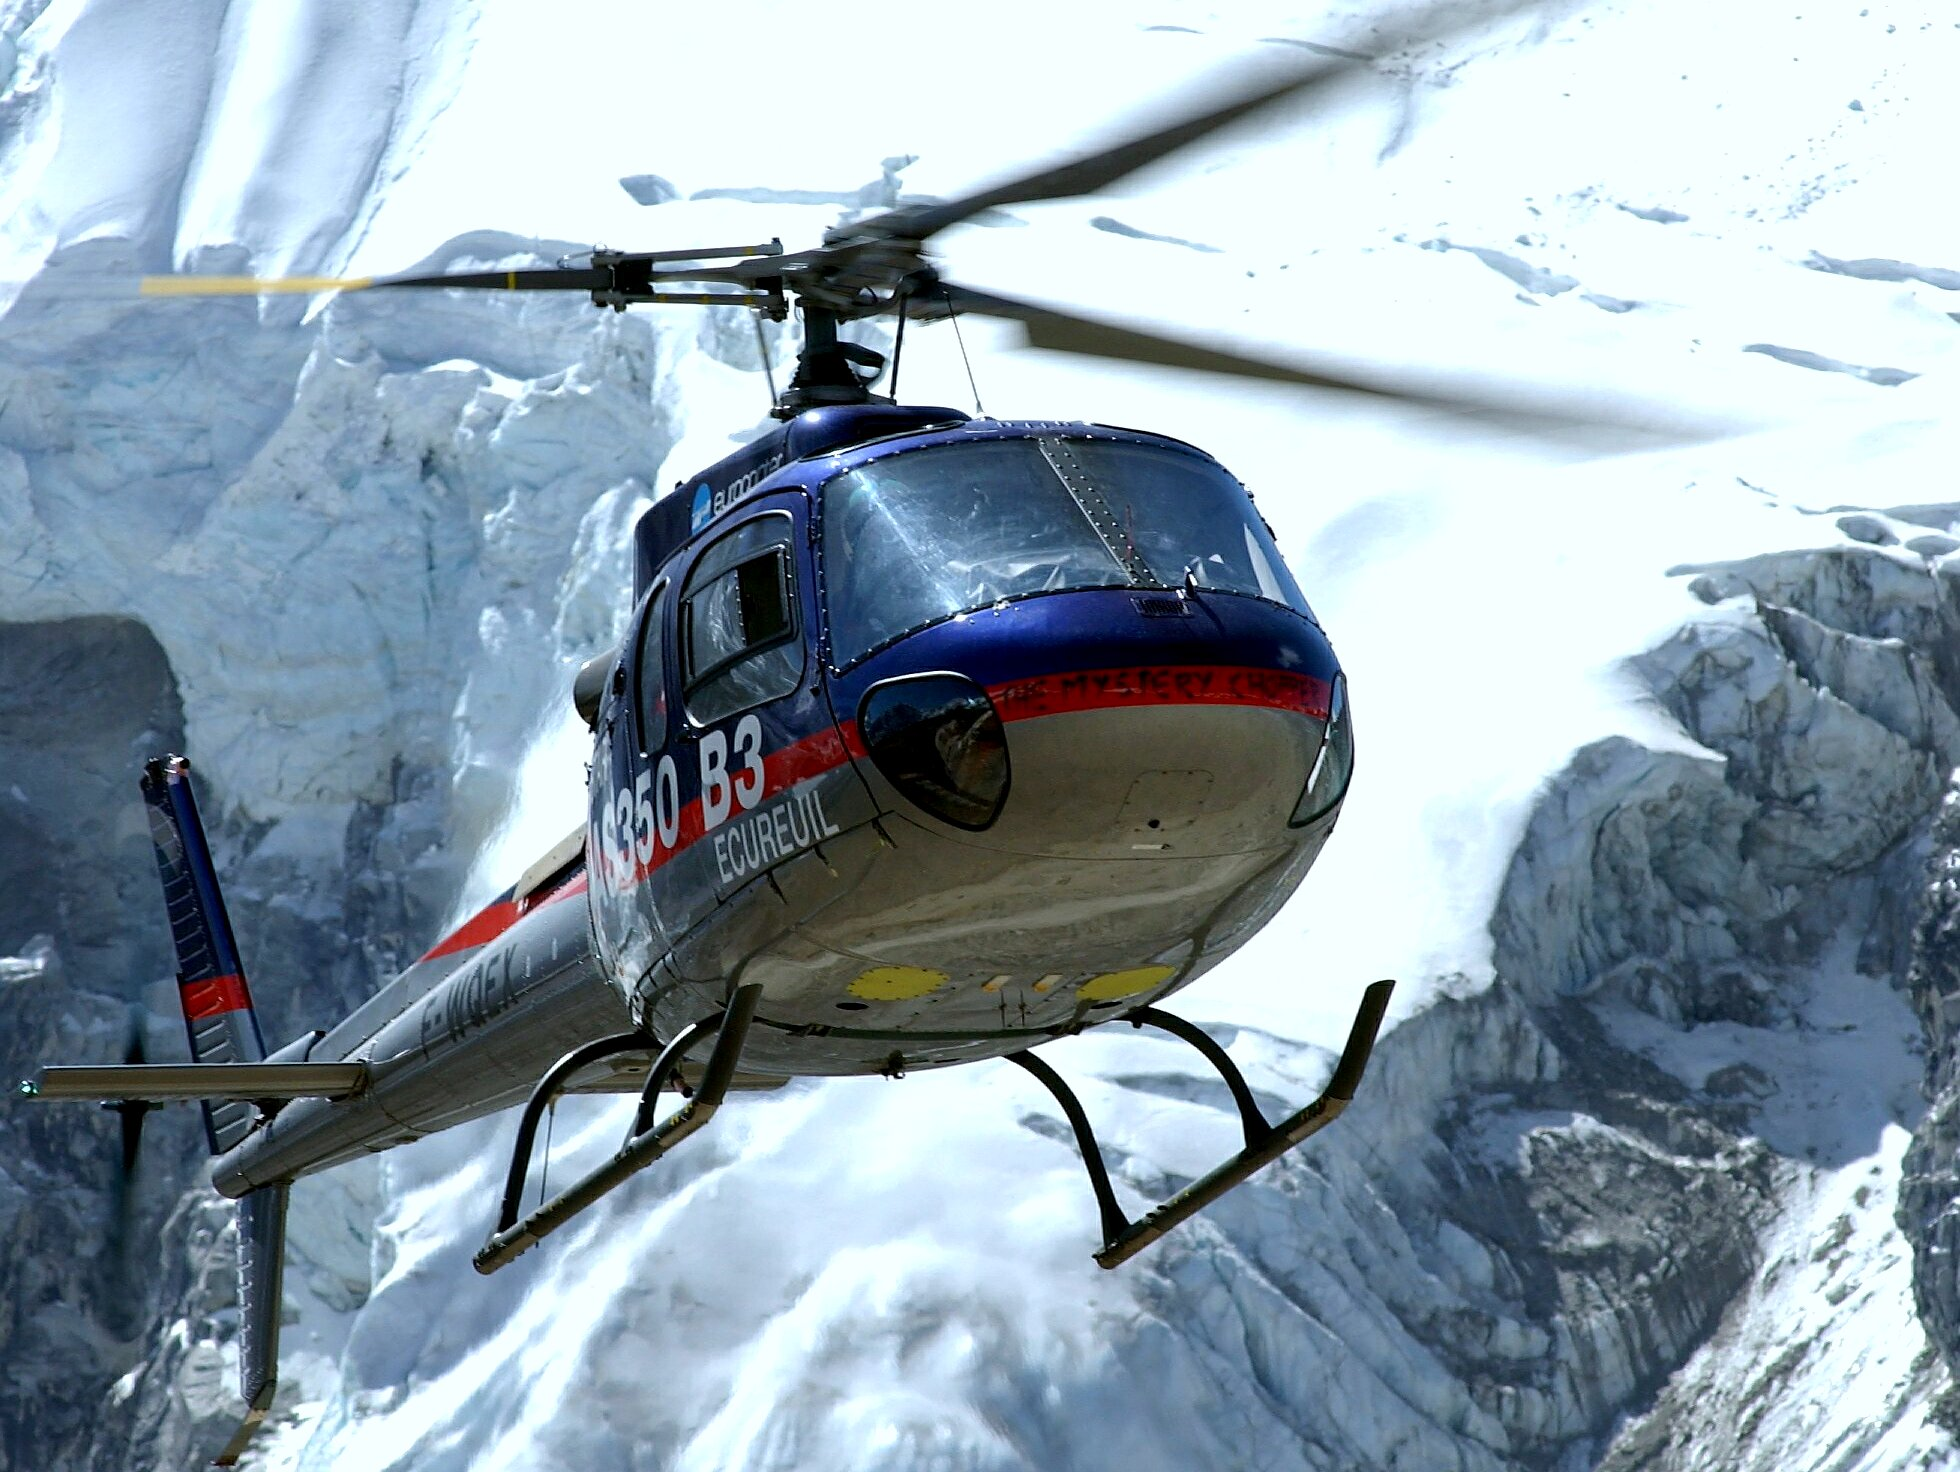 AS 350 B3 Helicopter at Everest